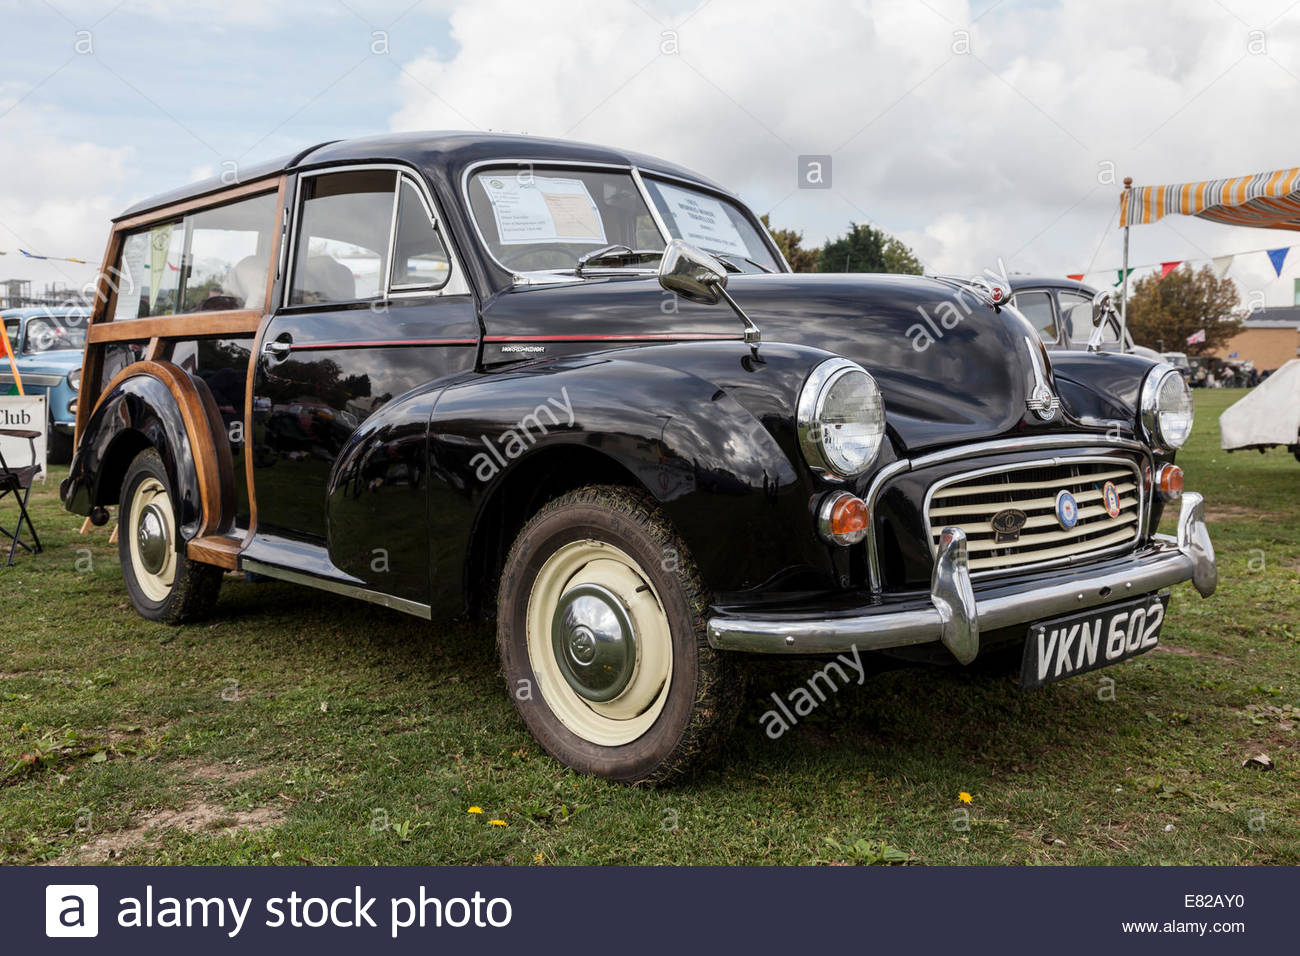 Morris Minor Traveller Series 1 1955 on show at a classic car event - Stock Image